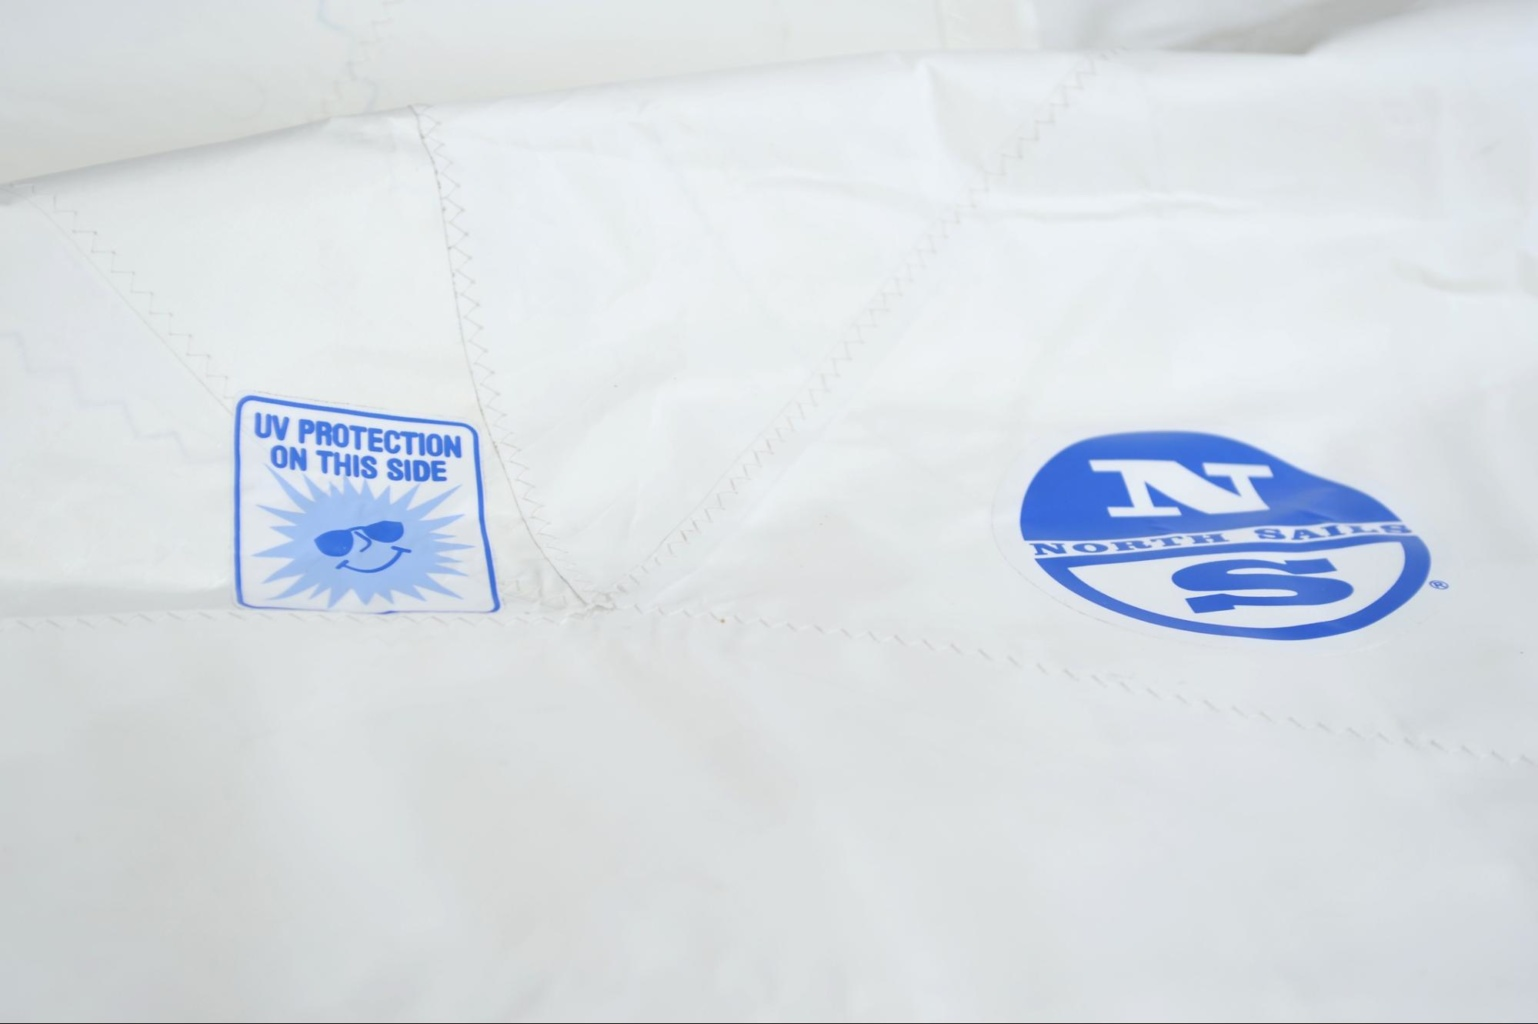 roller furling headsail with UV suncover sticker north sails